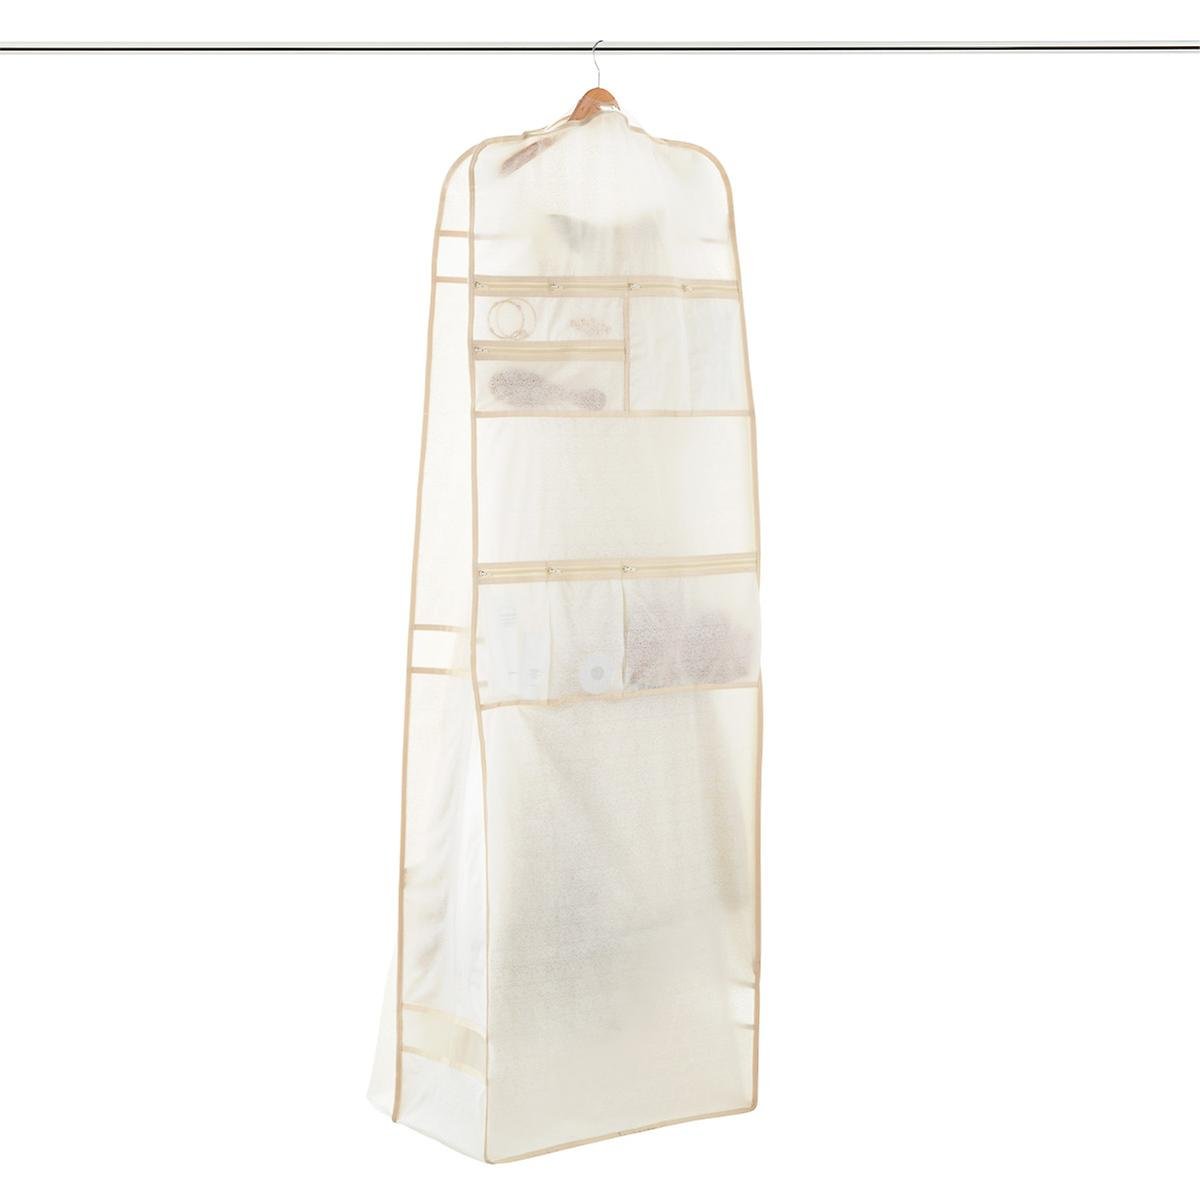 Setready Wedding Dress Garment Bag The Container Store